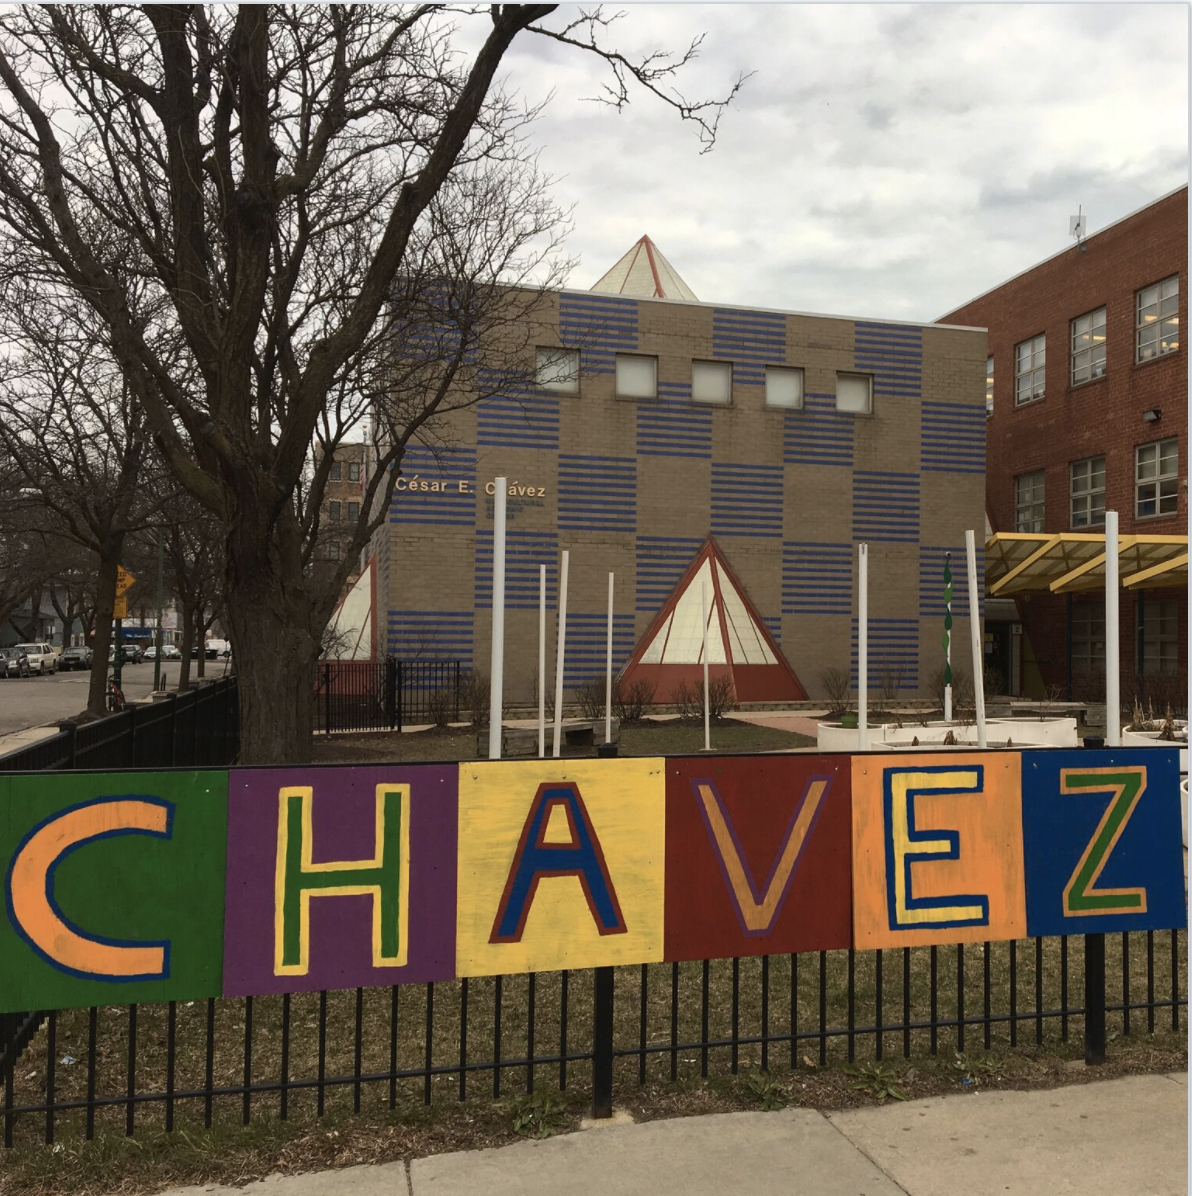 Chavez Elementary.png